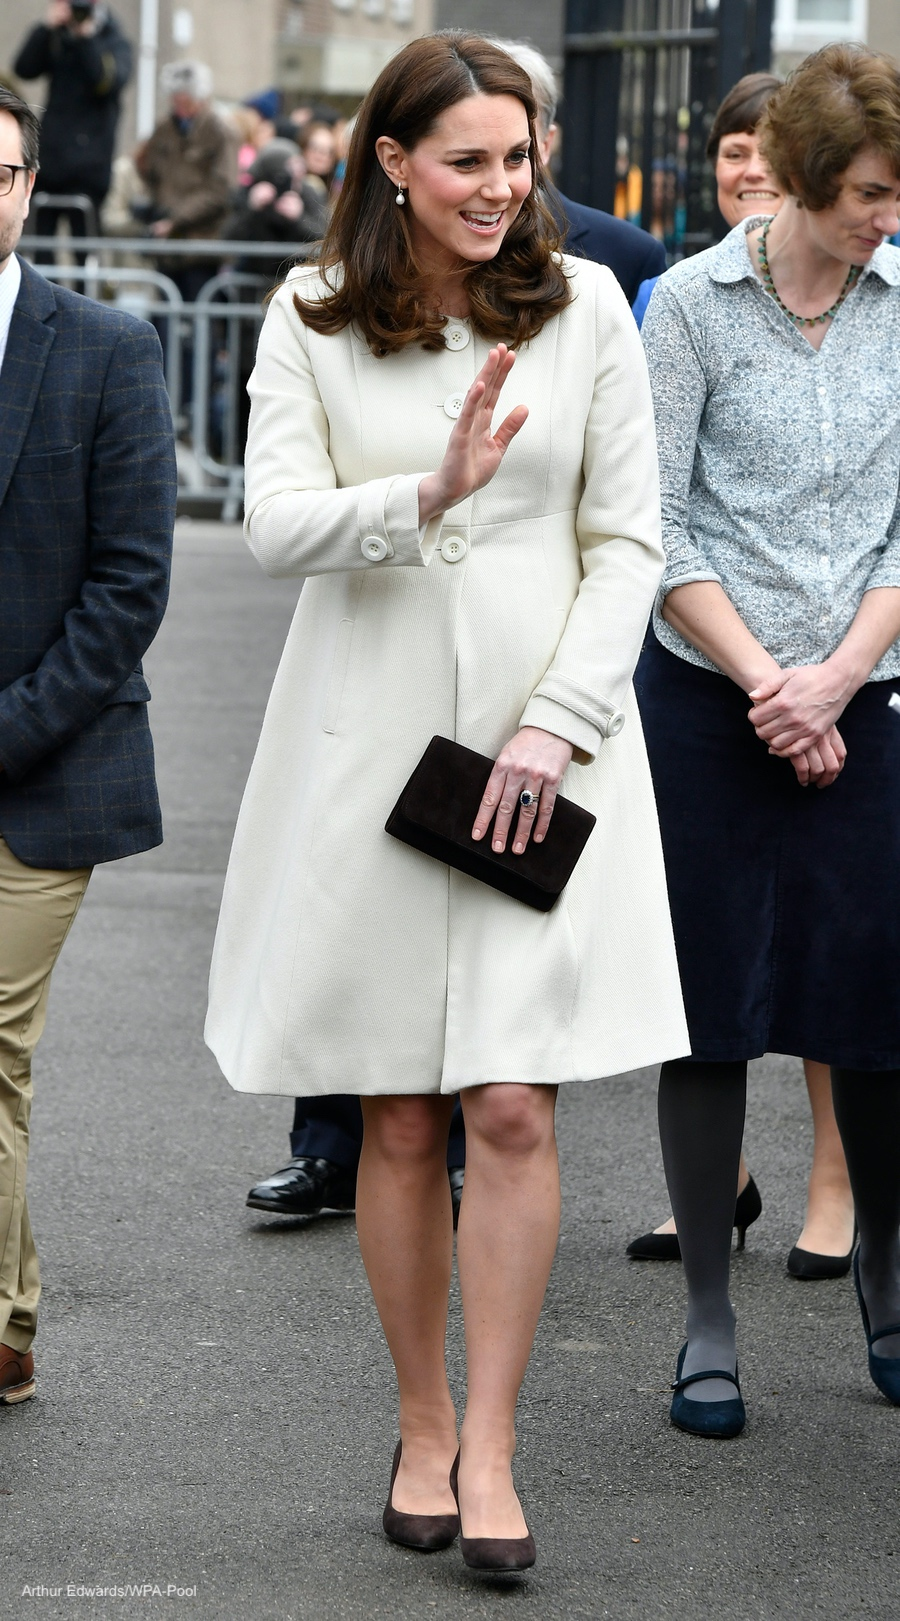 Kate Middleton wearing her cream Jojo Maman Bebe coat